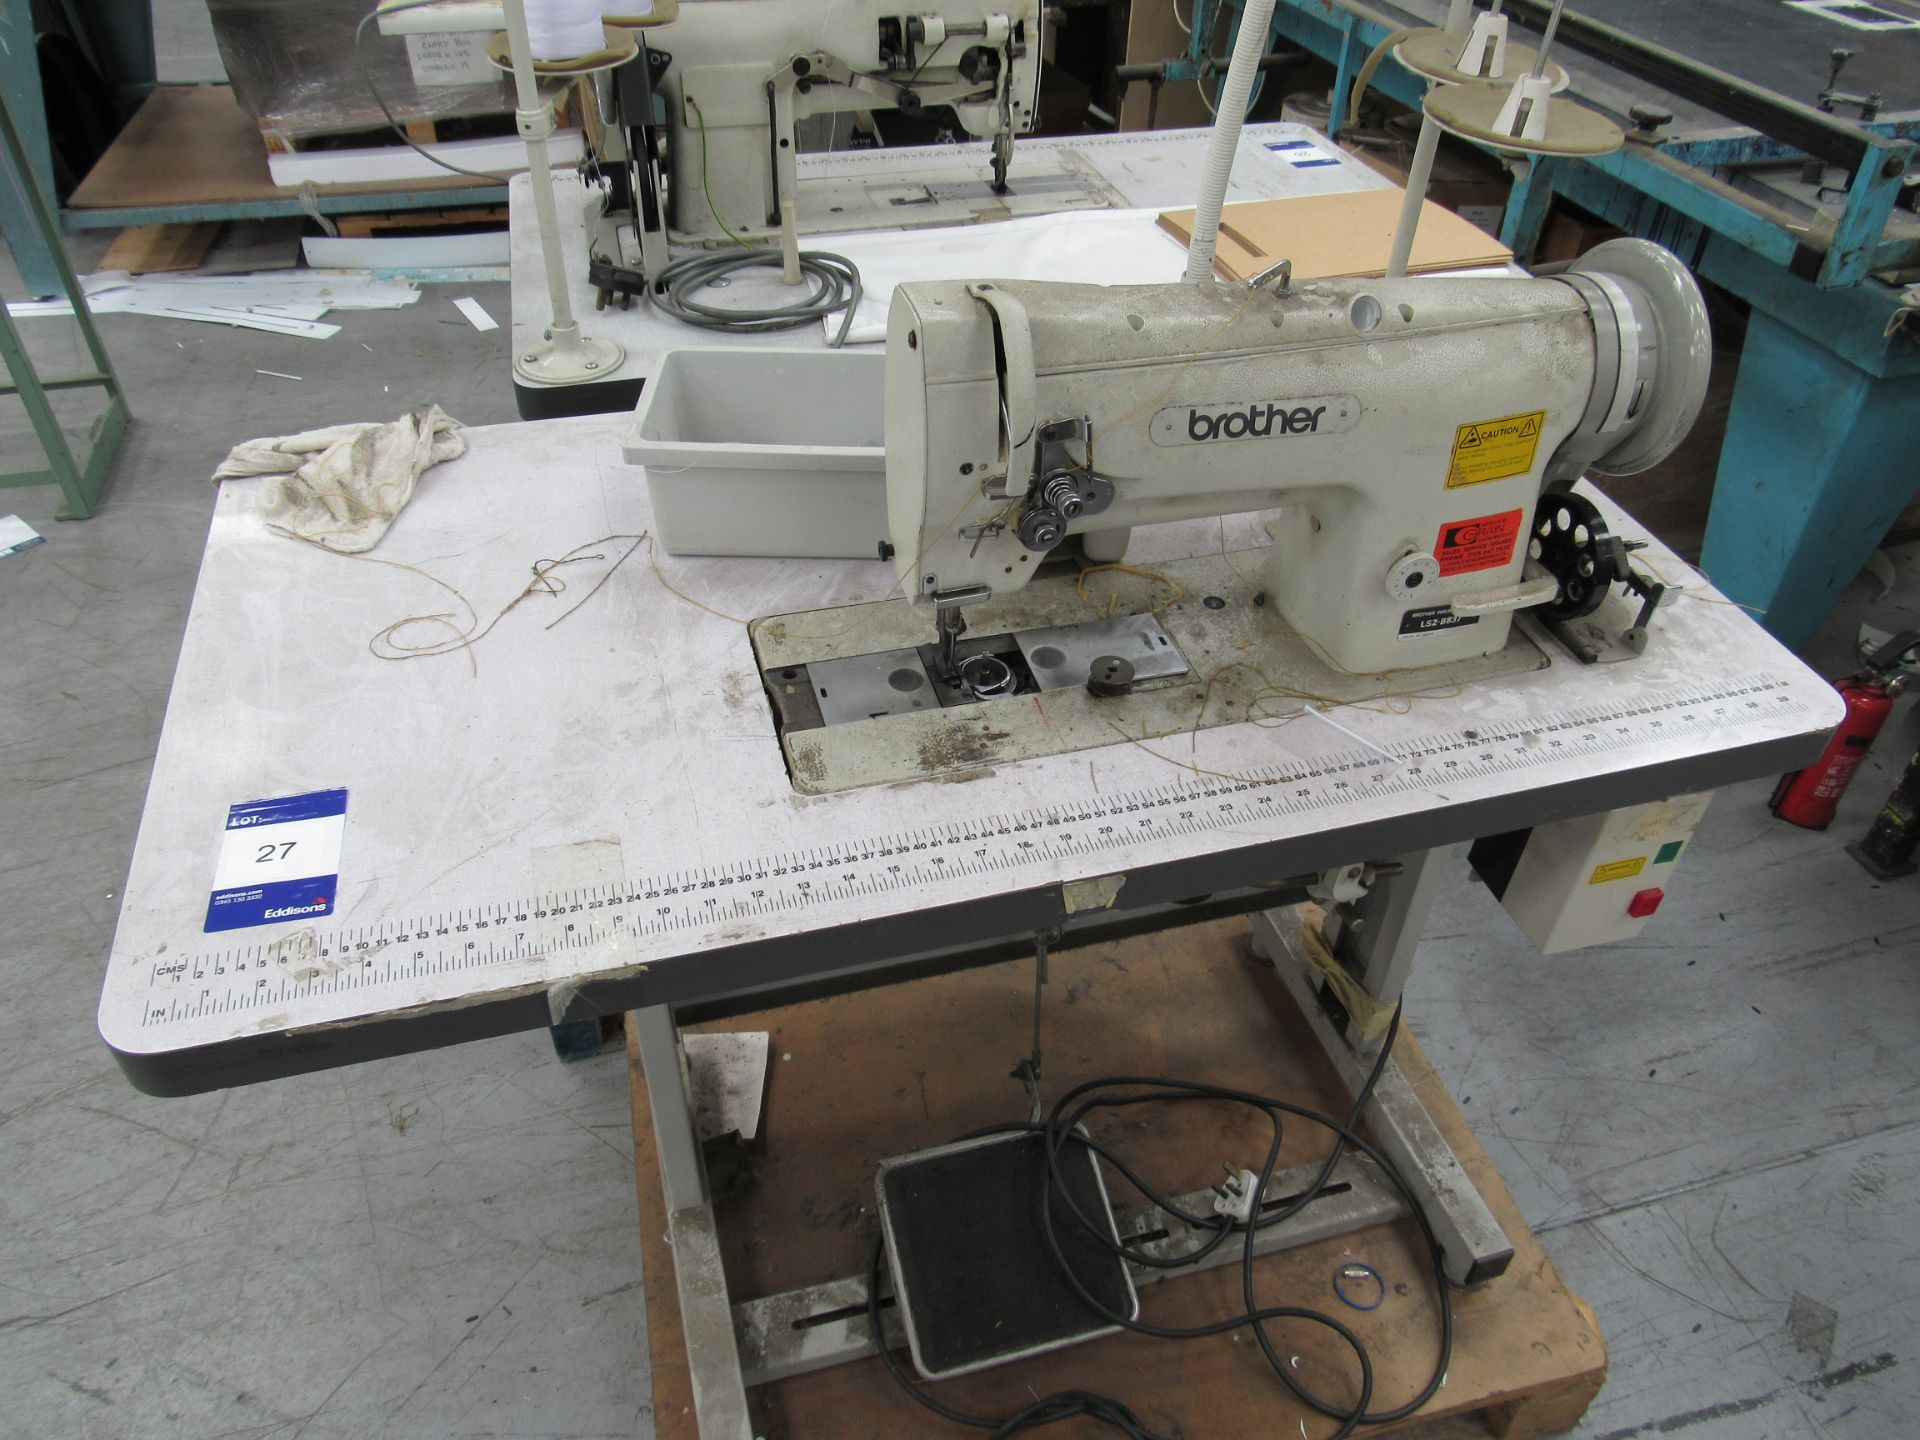 Brother LS2-B837 Industrial Sewing Machine Serial Number B9543539 - Image 2 of 3